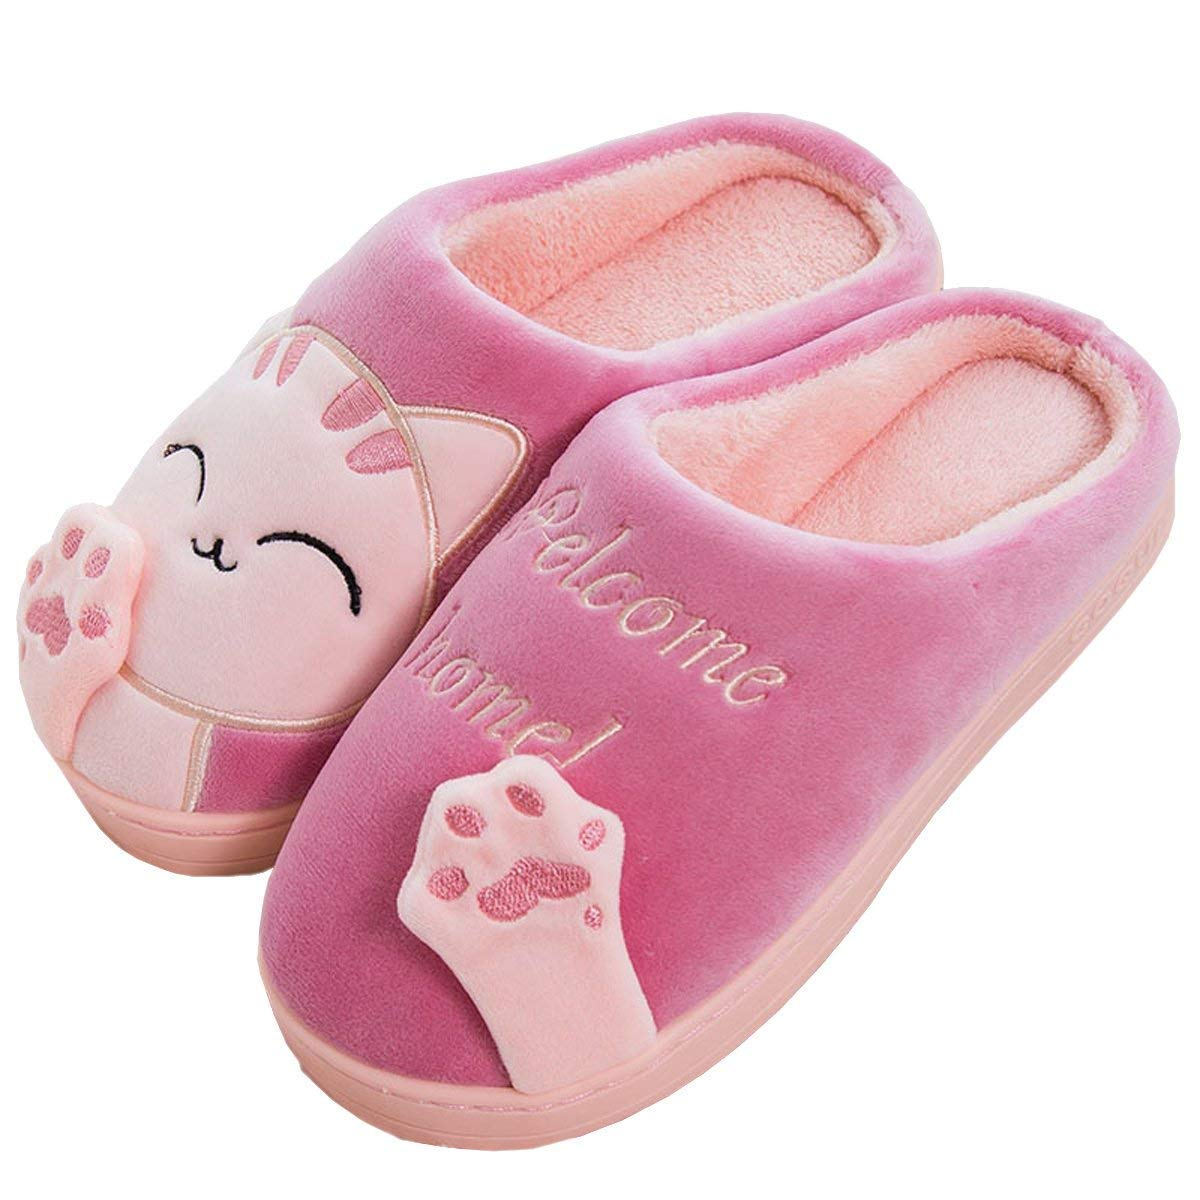 c0c7bfe46bf2 SITAILE Cute Winter Home Slippers